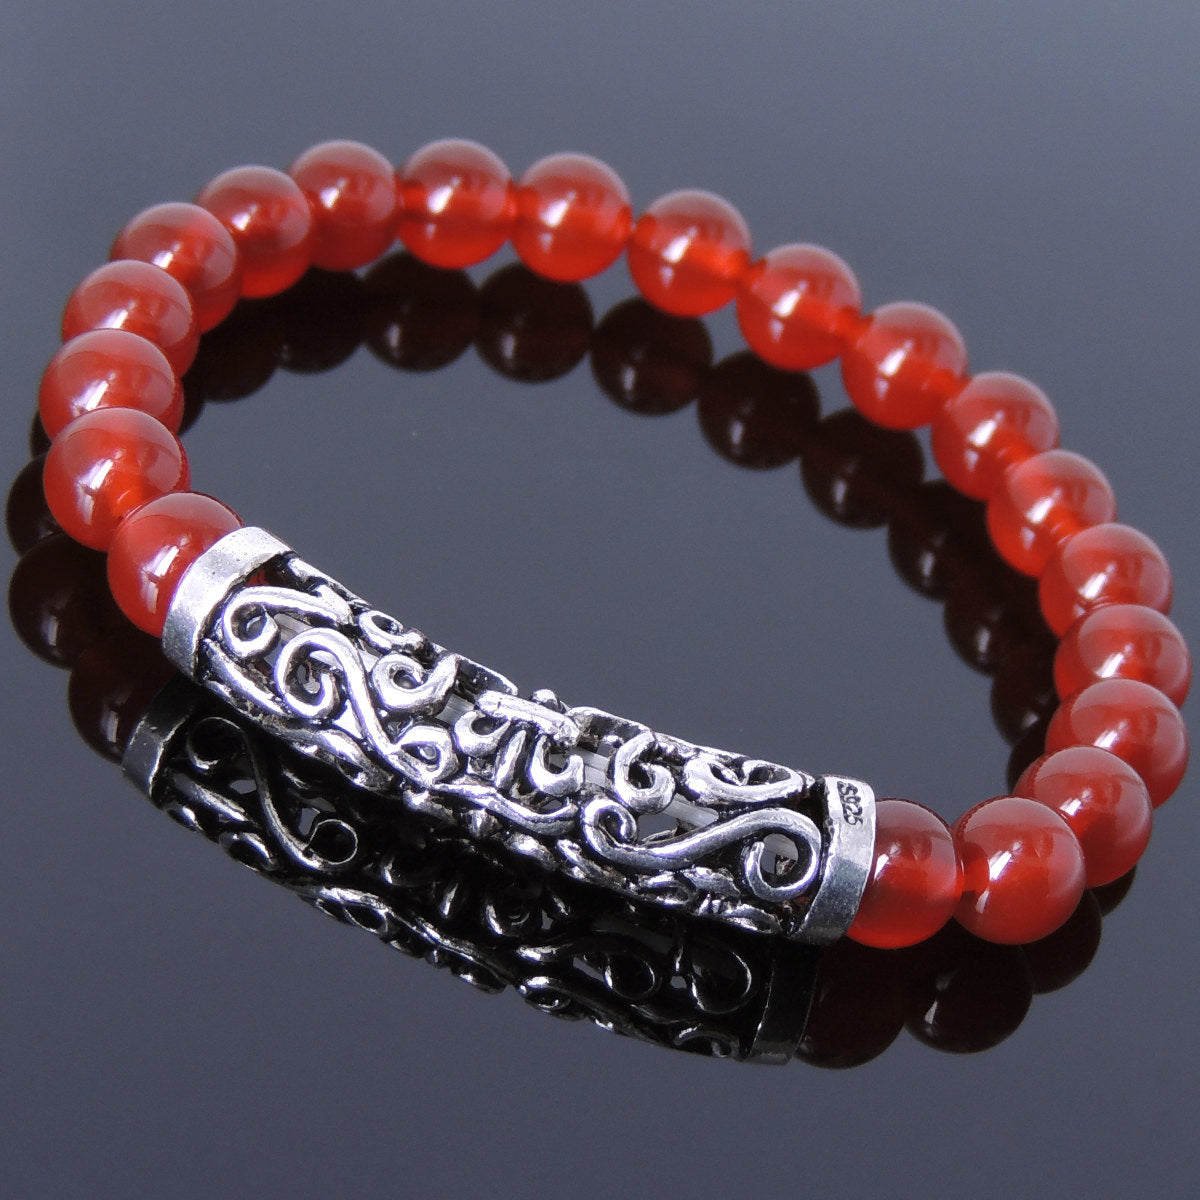 8mm Red Agate Healing Gemstone Bracelet with S925 Sterling Silver Celtic Fleur de Lis Charm - Handmade by Gem & Silver BR973